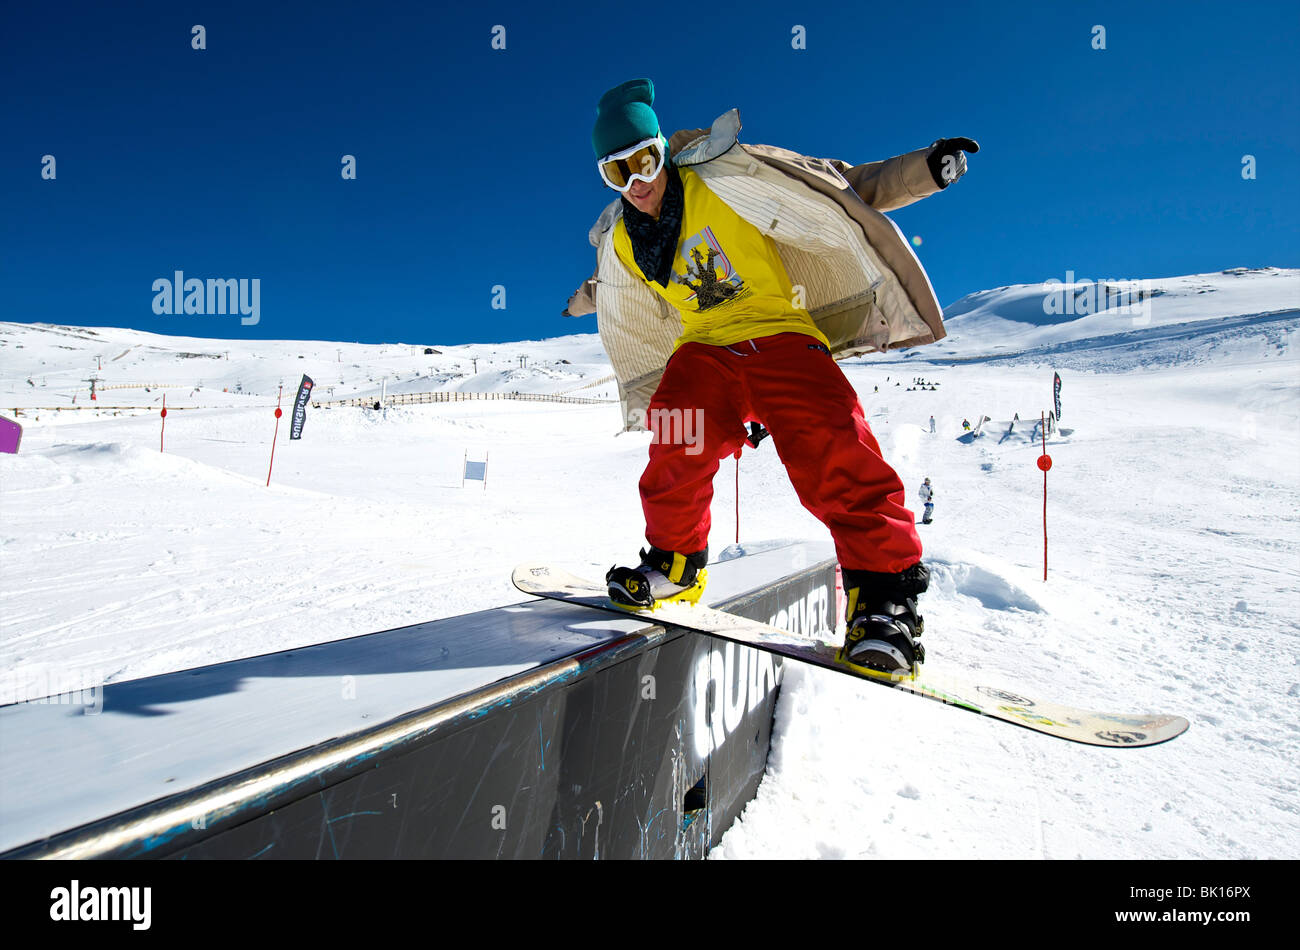 Snowboarder on a slide - Stock Image